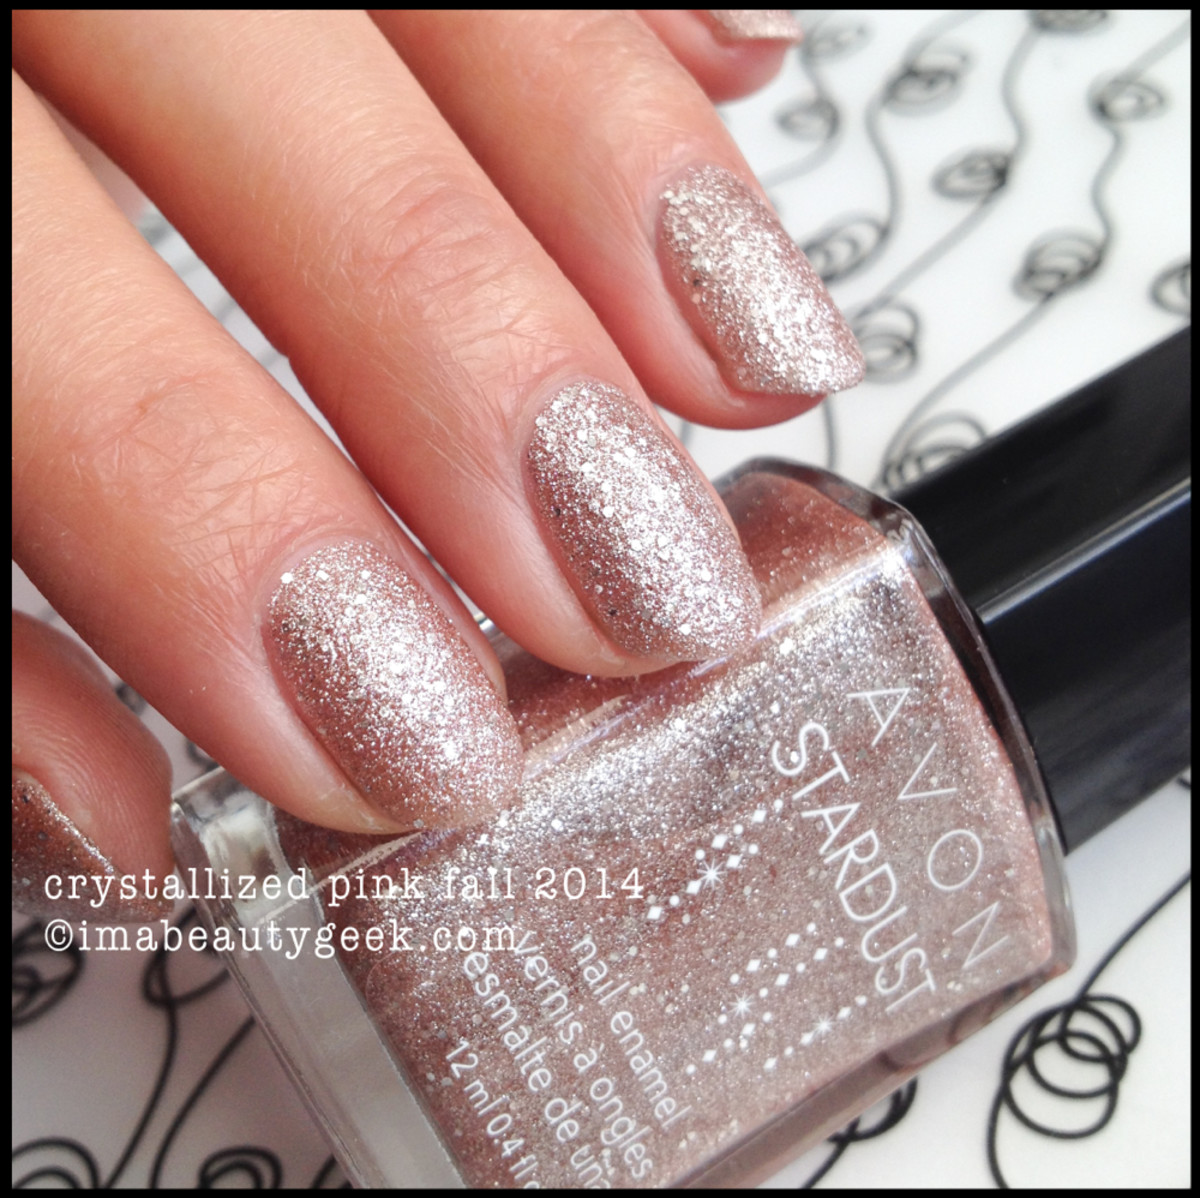 Avon Stardust Crystallized Pink Fall 2014